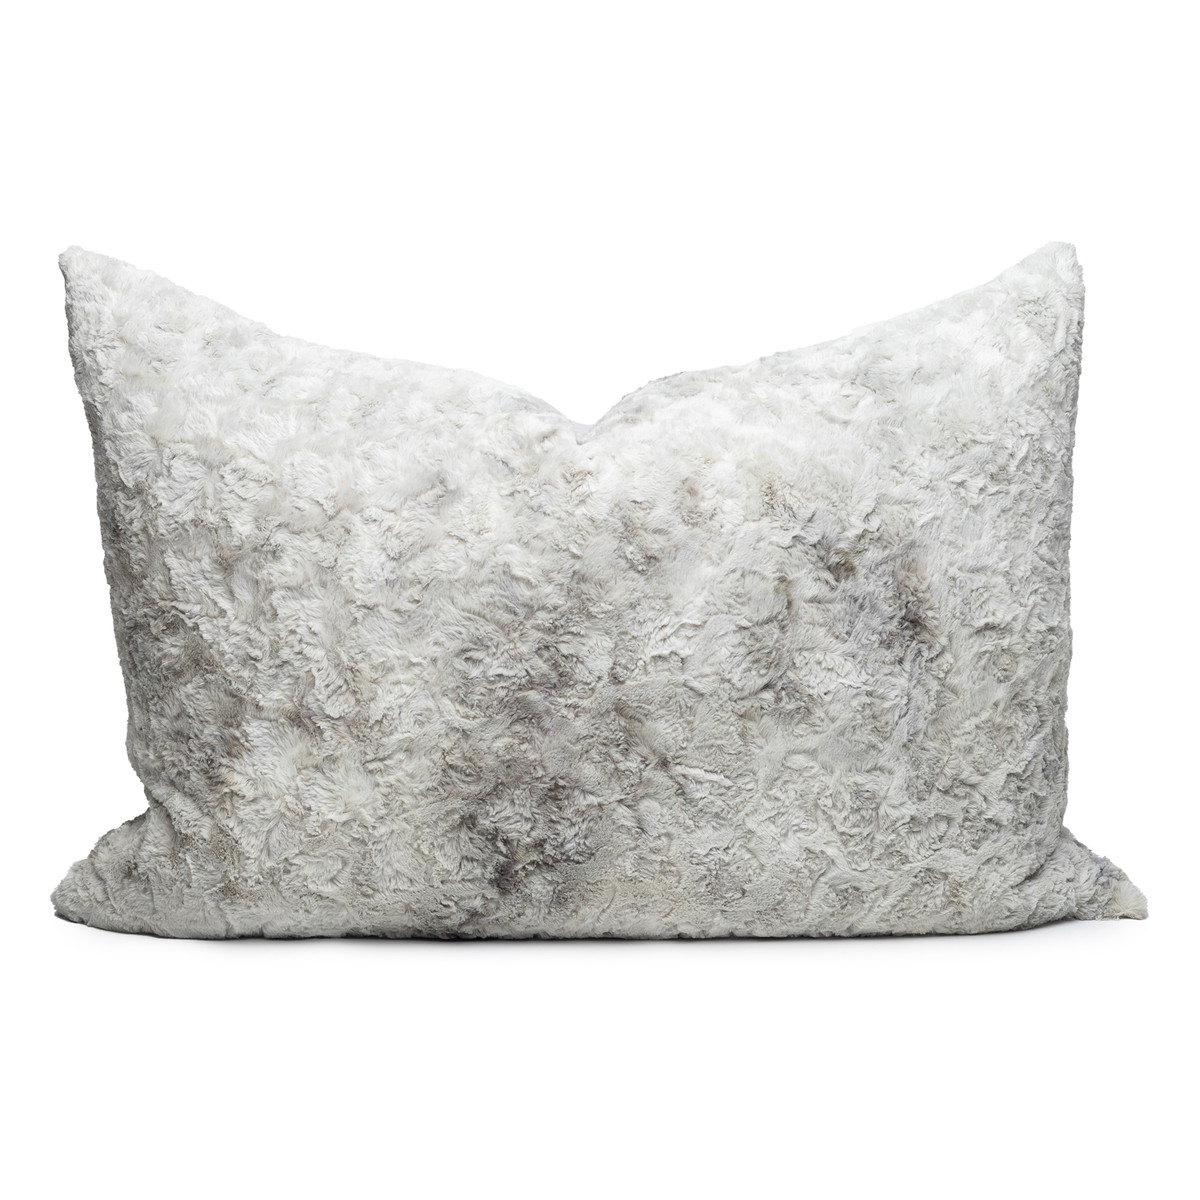 Charlotte Gray Vegan Faux Fur Pillow Cozy Granite - Front